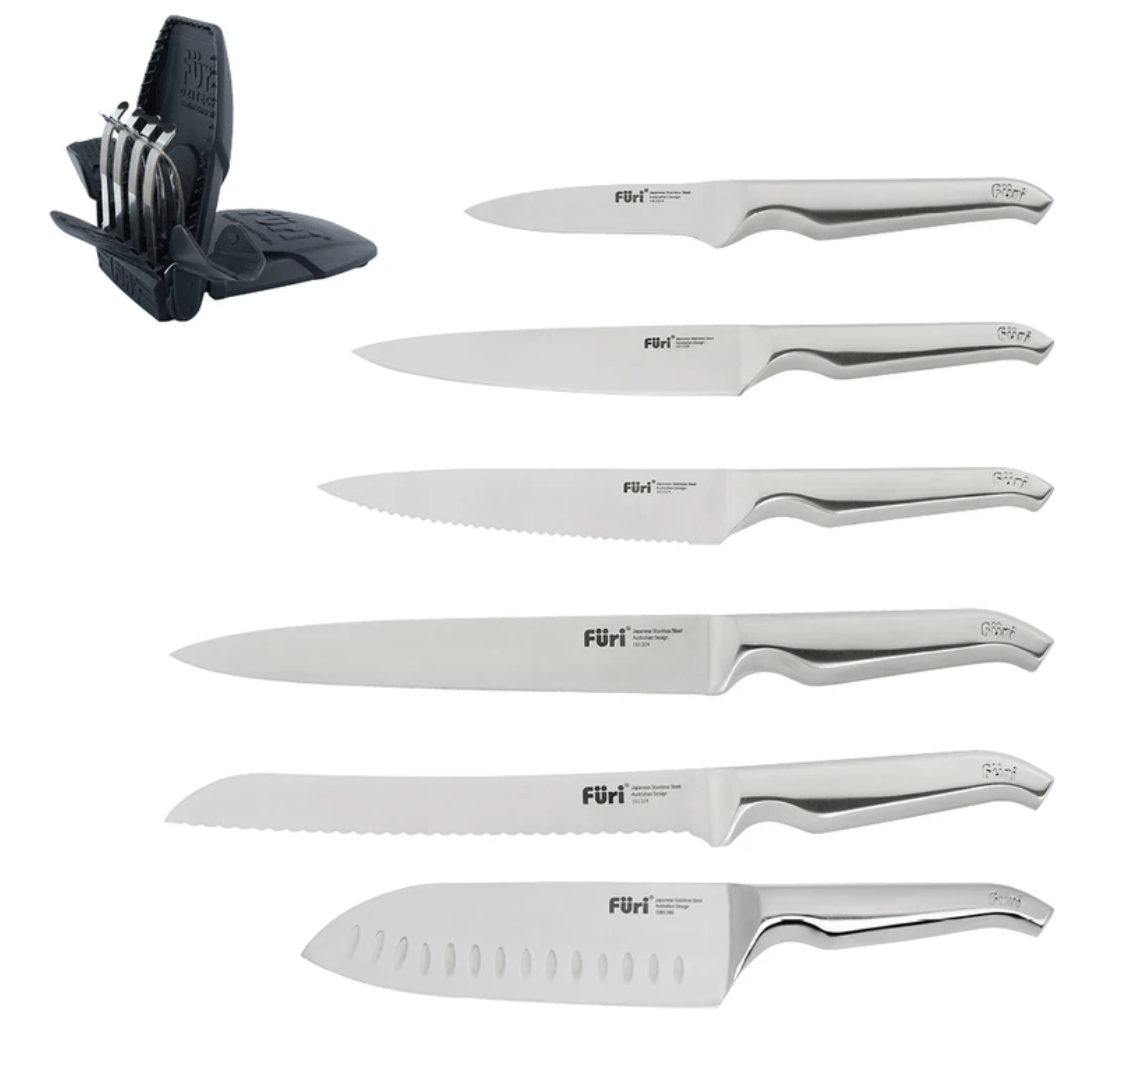 Furi Pro Vault Knife Block Set 8 Piece